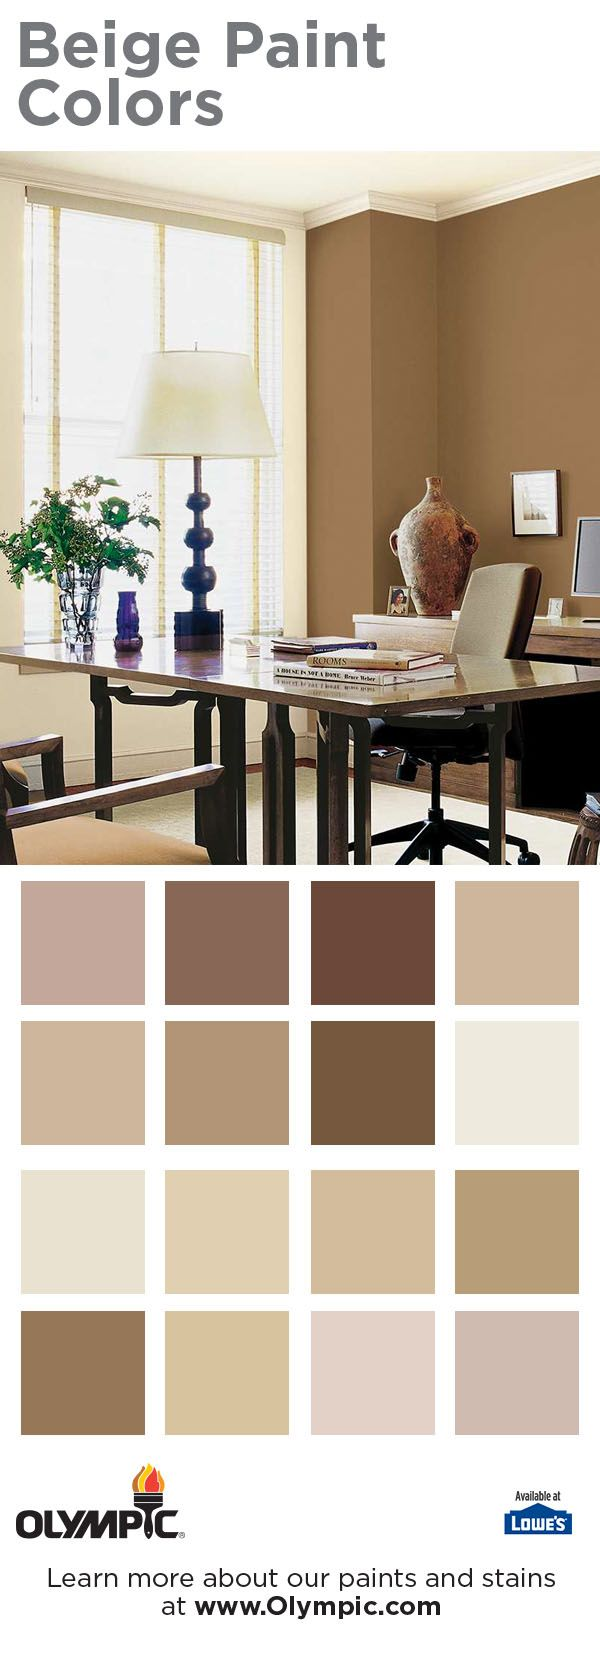 best beige paint colors36 best Beige Paint Colors images on Pinterest  Olympic paint